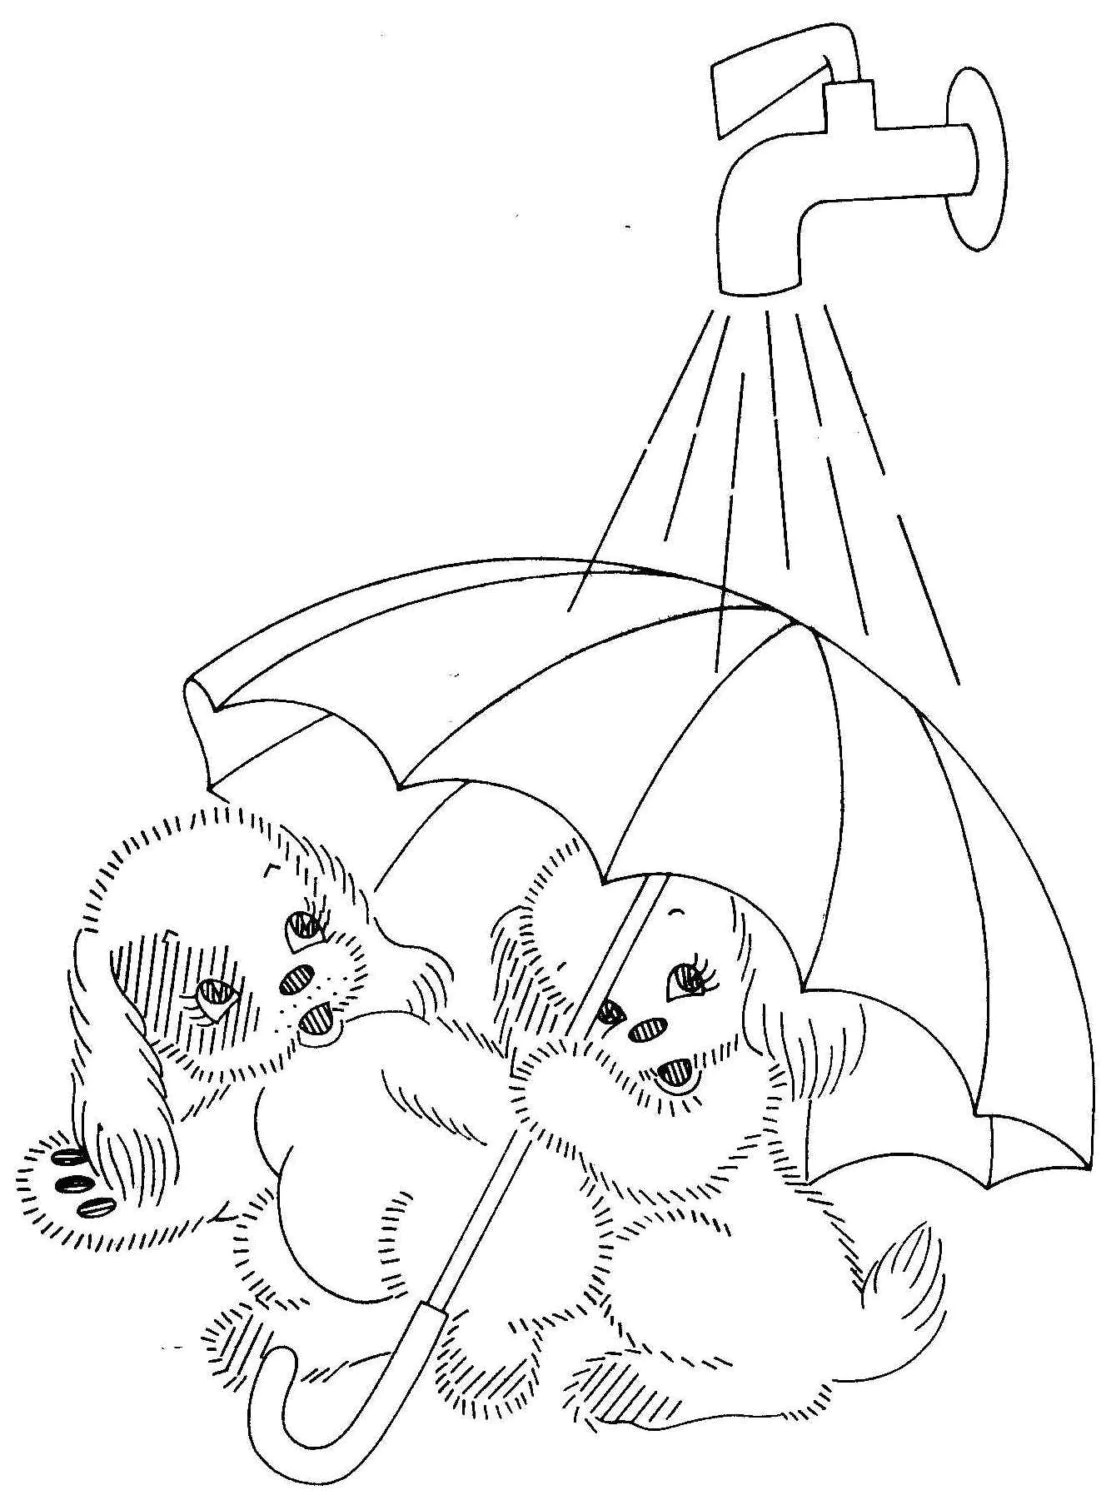 Vintage Hand Embroidery PATTERN PDF File 7259 Adorable Puppies